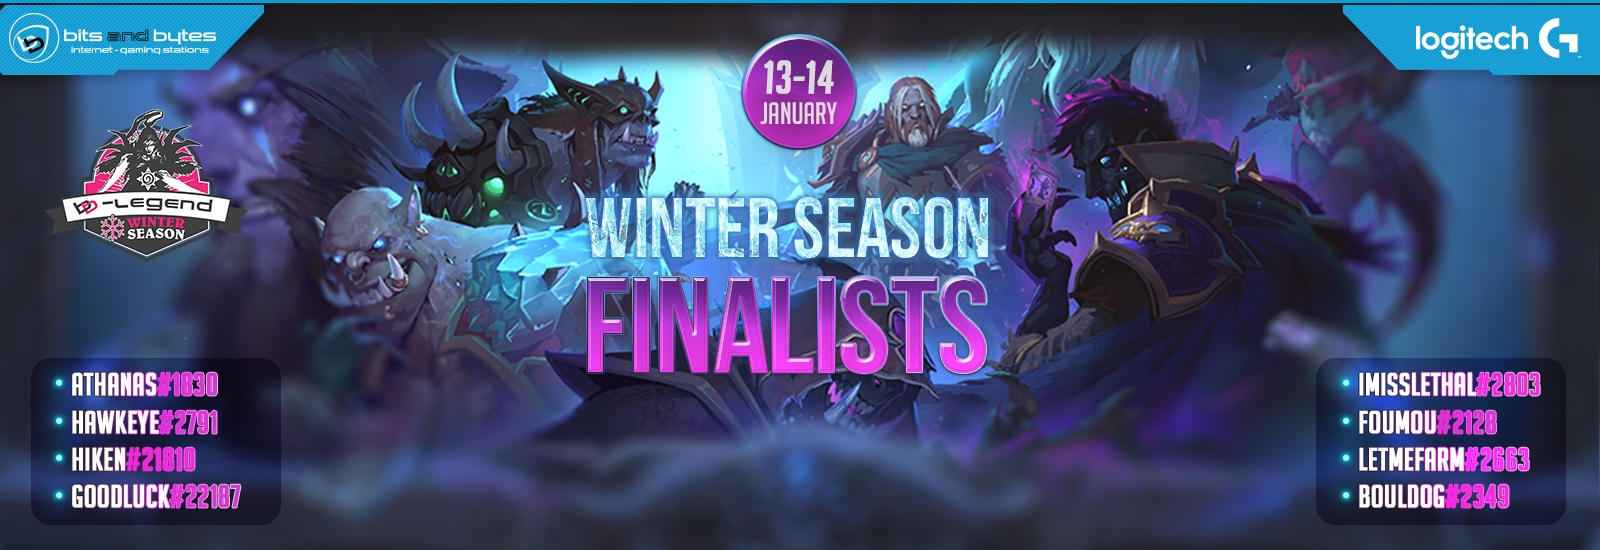 Hearthstone B-Legend Winter Season LAN Finals 13/1/18